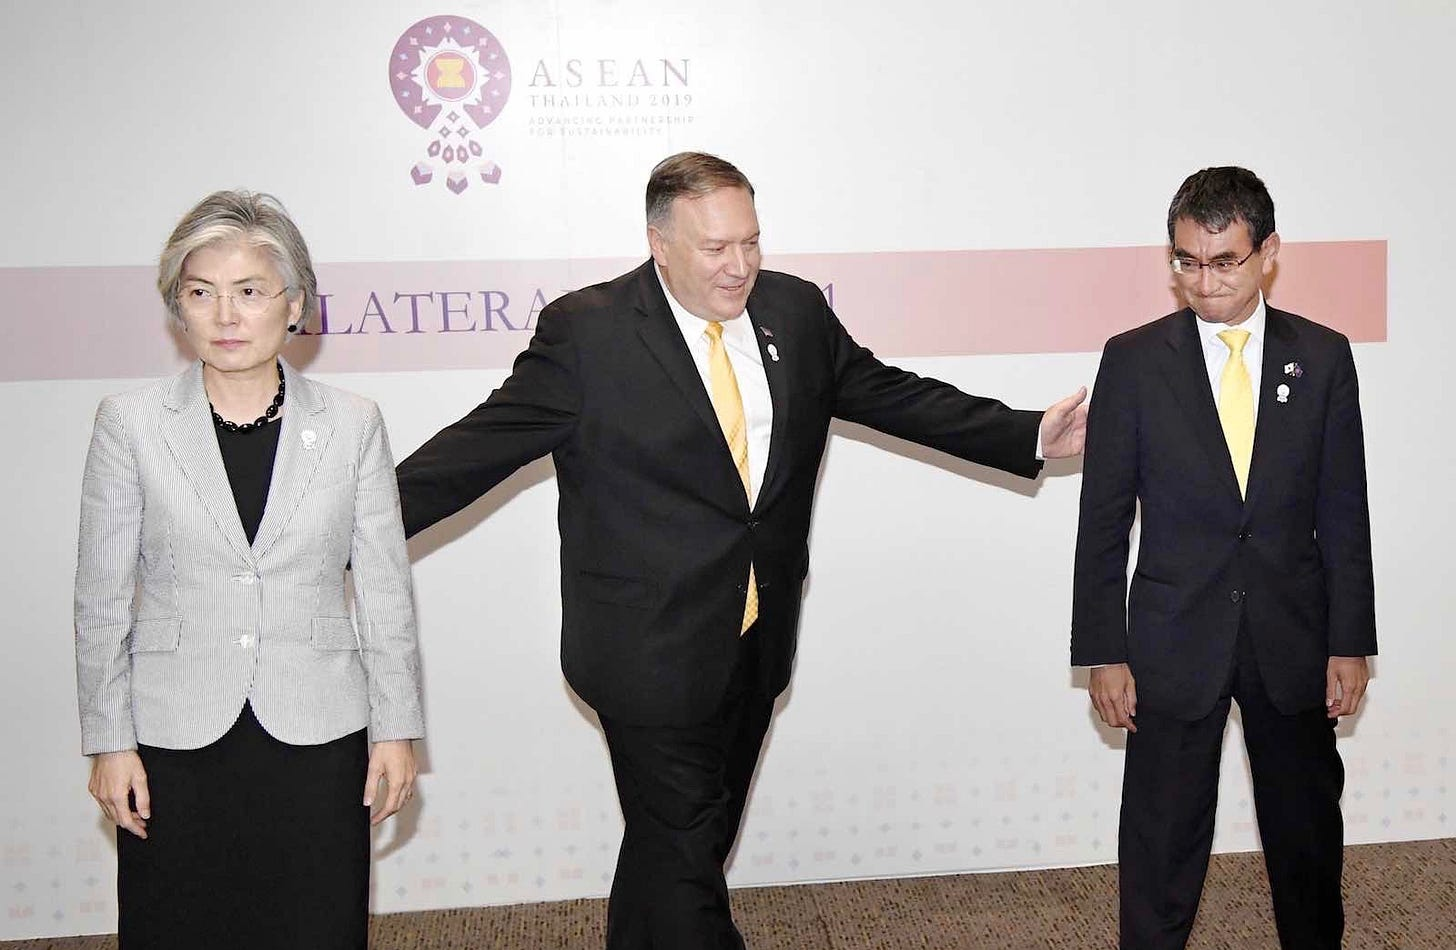 (L-R) South Korean Foreign Minister Kang Kyung Wha, US Secretary of State Mike Pompeo, and Japanese Foreign Minister Taro Kono following talks in Bangkok, 2 August 2019 (Photo: Kyodo News via Getty)